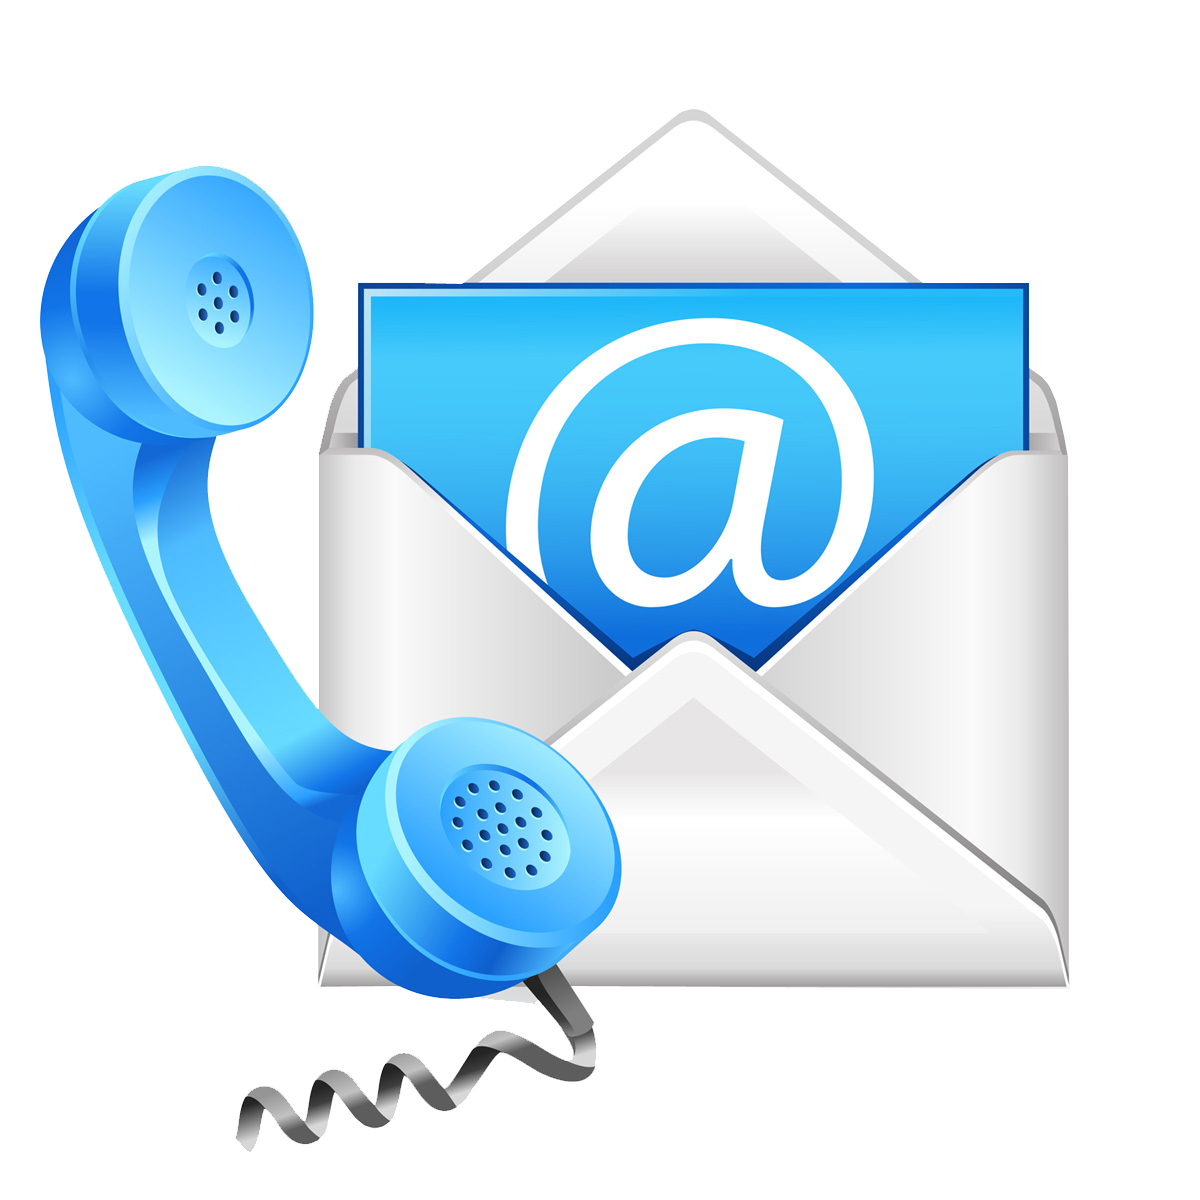 contact-icon-png-0